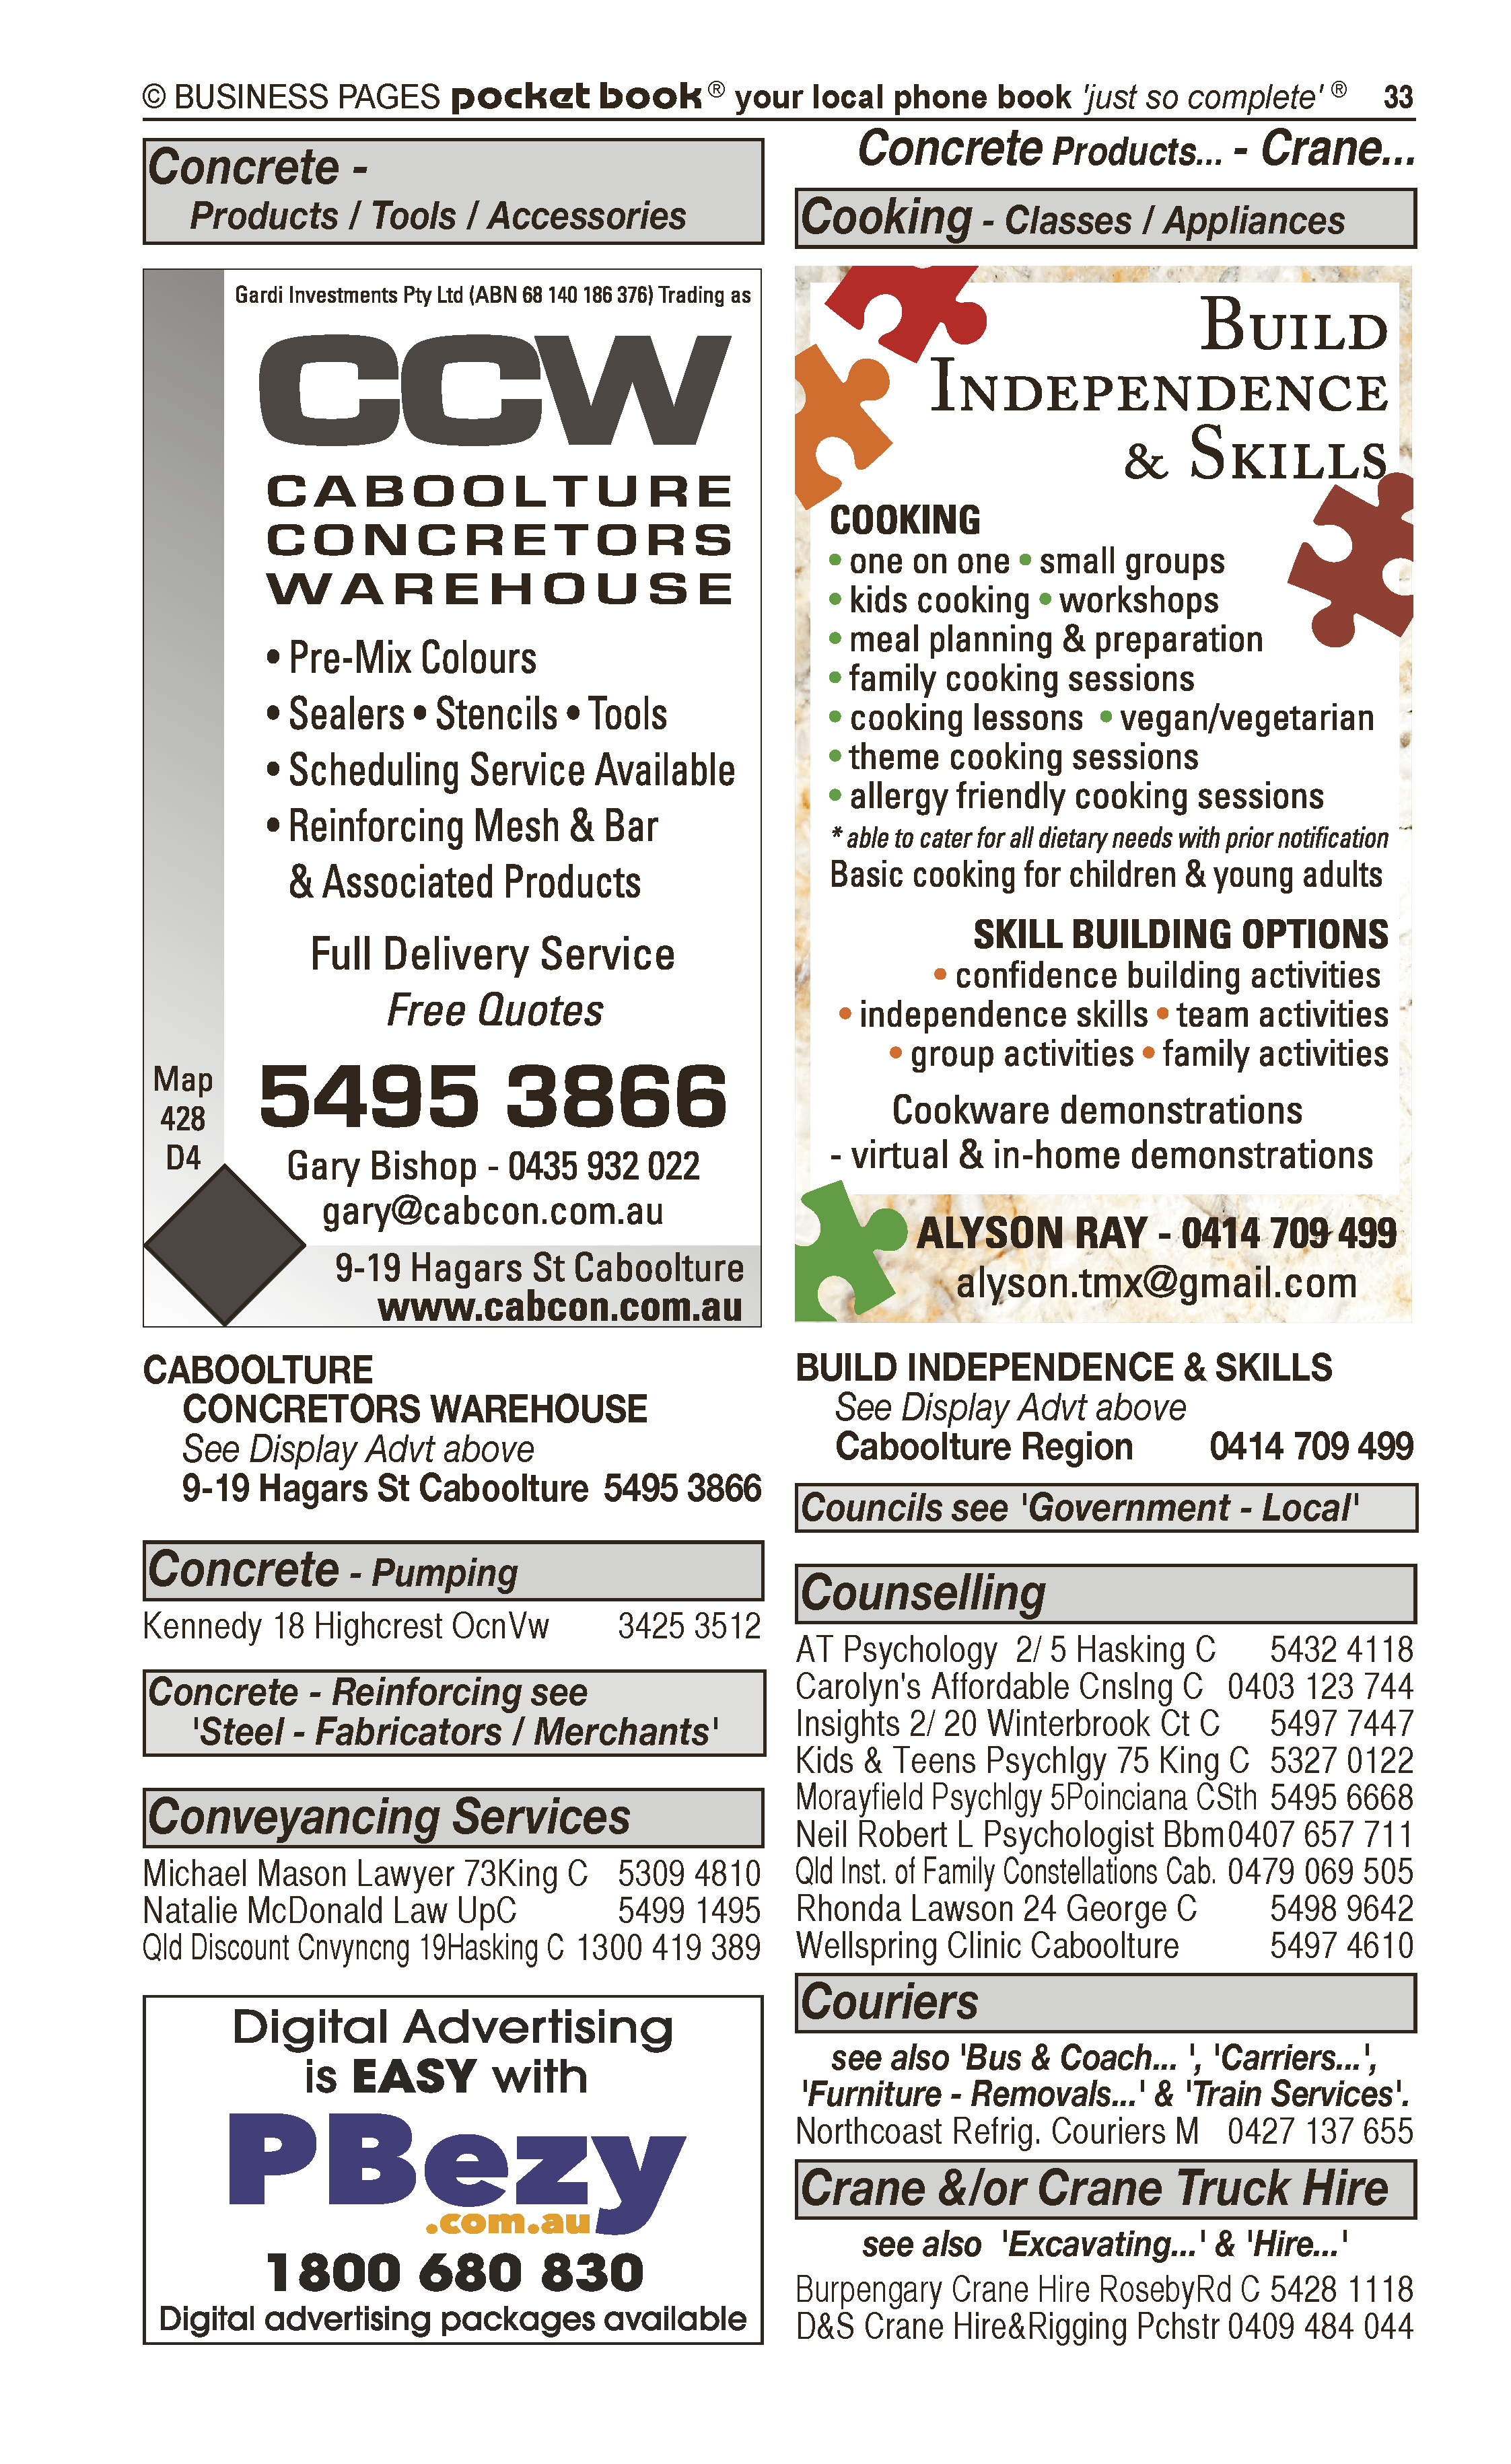 Brooker Fencing | Fencing – Contractors, Materials in Caboolture | PBezy Pocket Books local directories - page 33